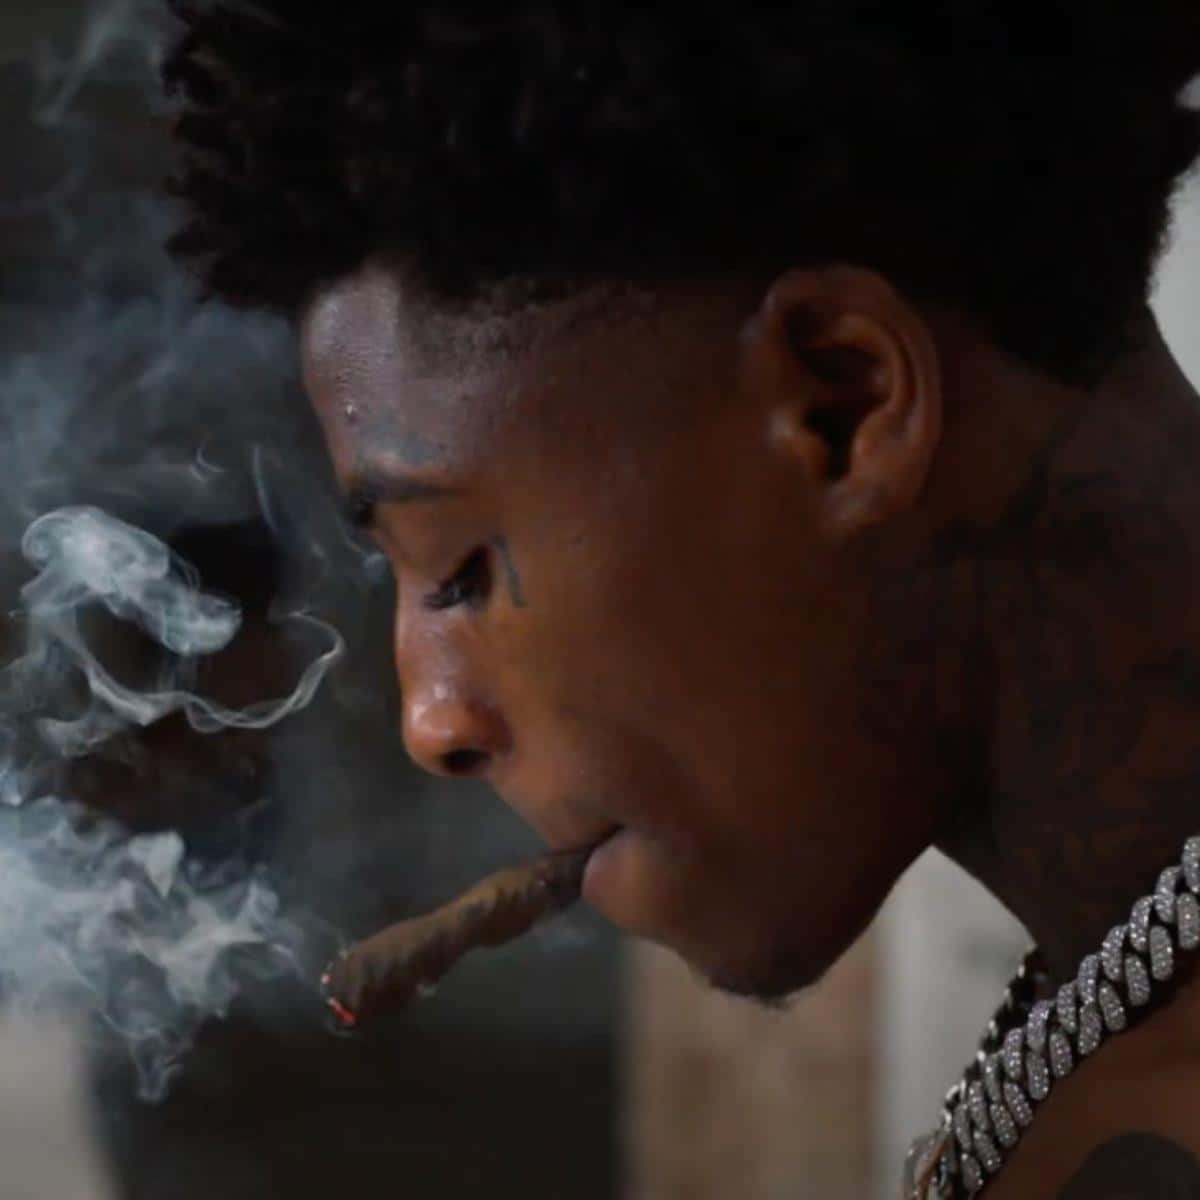 Upcoming: Mr. Poppins - Nba Youngboy - Death Enclaimed REMIX